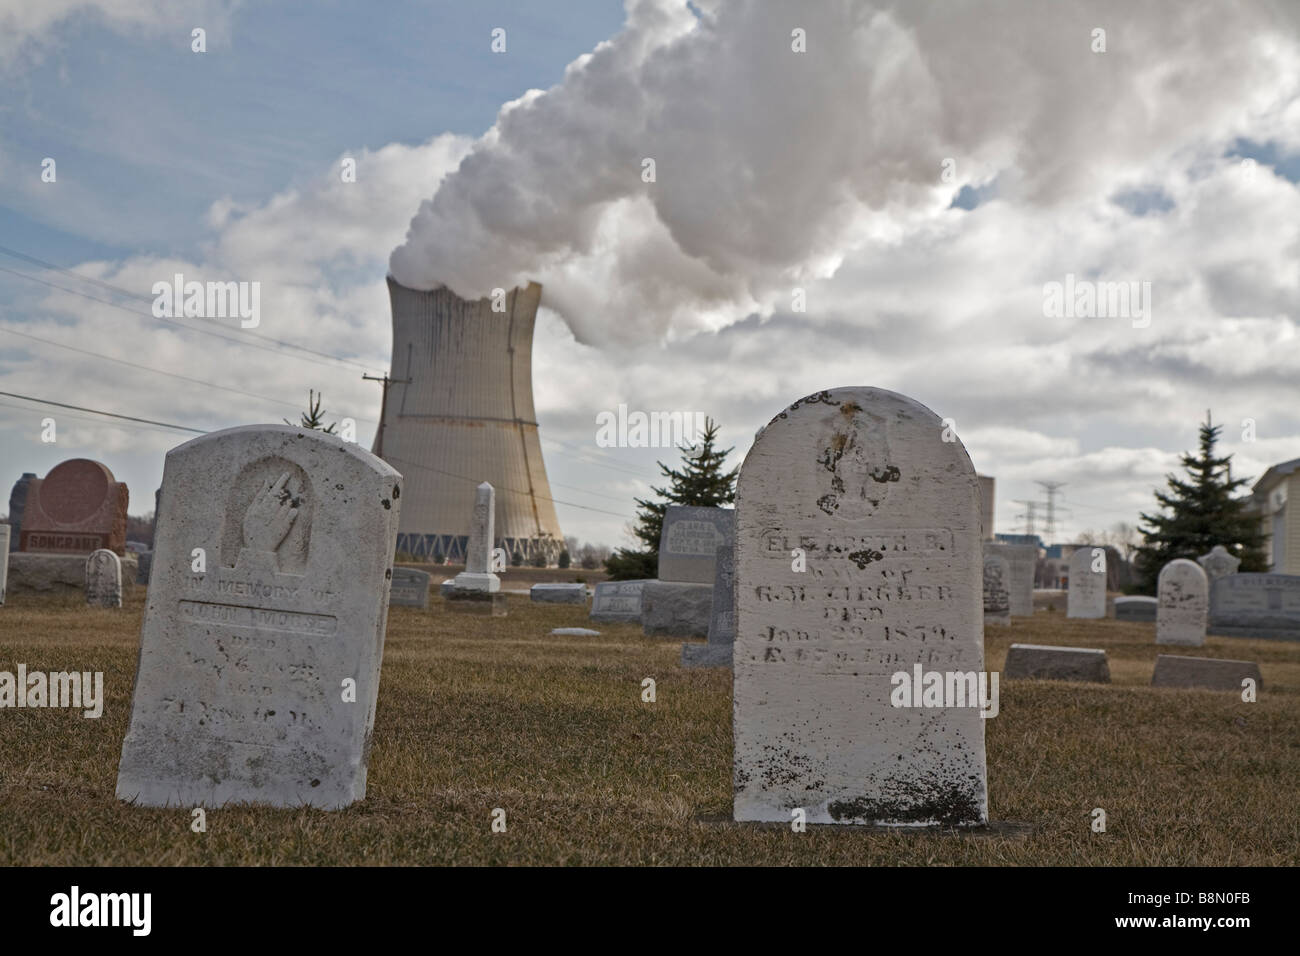 Nuclear Power Plant and Cemetery - Stock Image